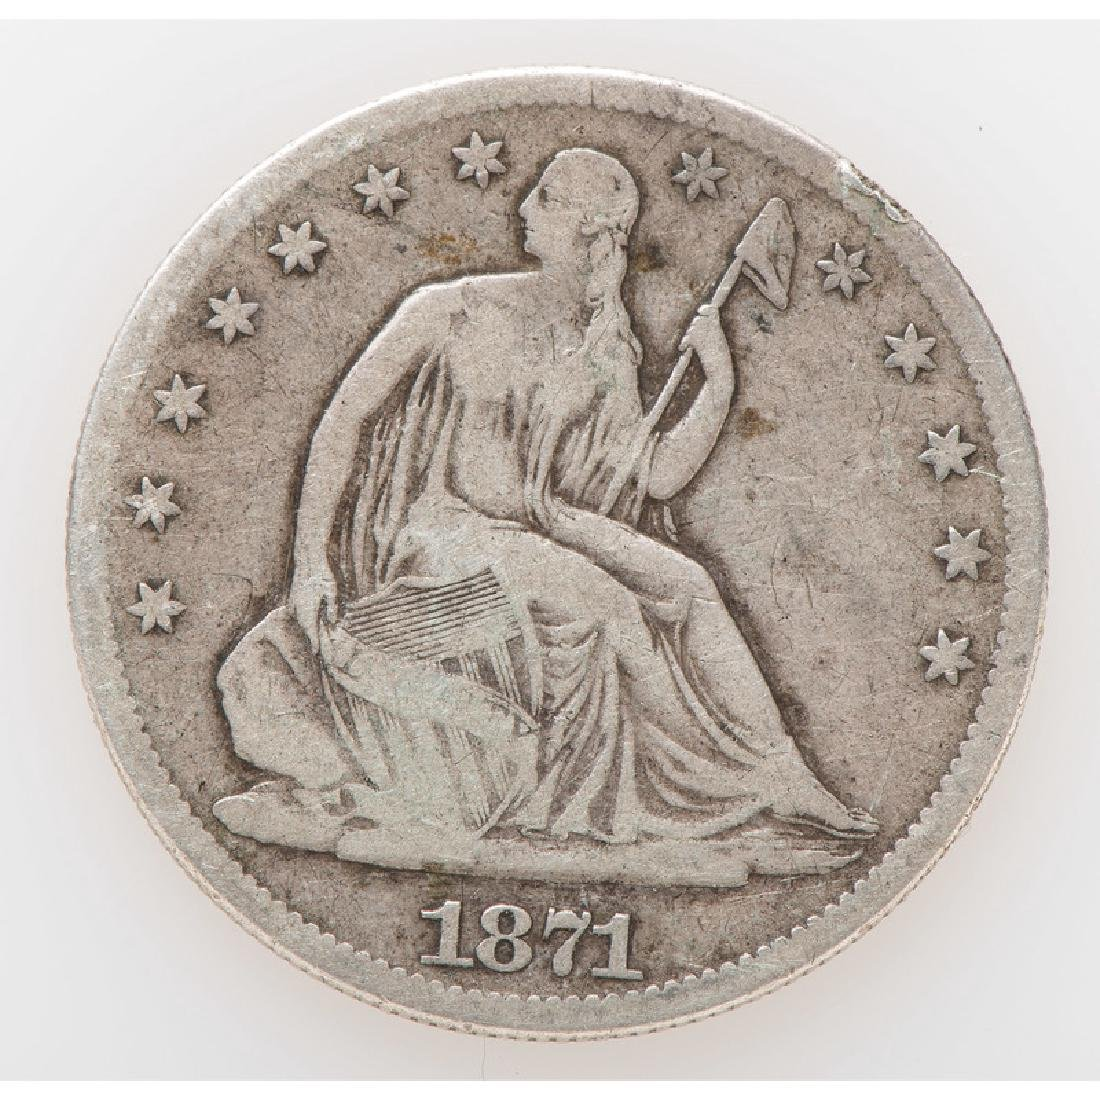 United States Liberty Seated Half Dollar 1871 Carson